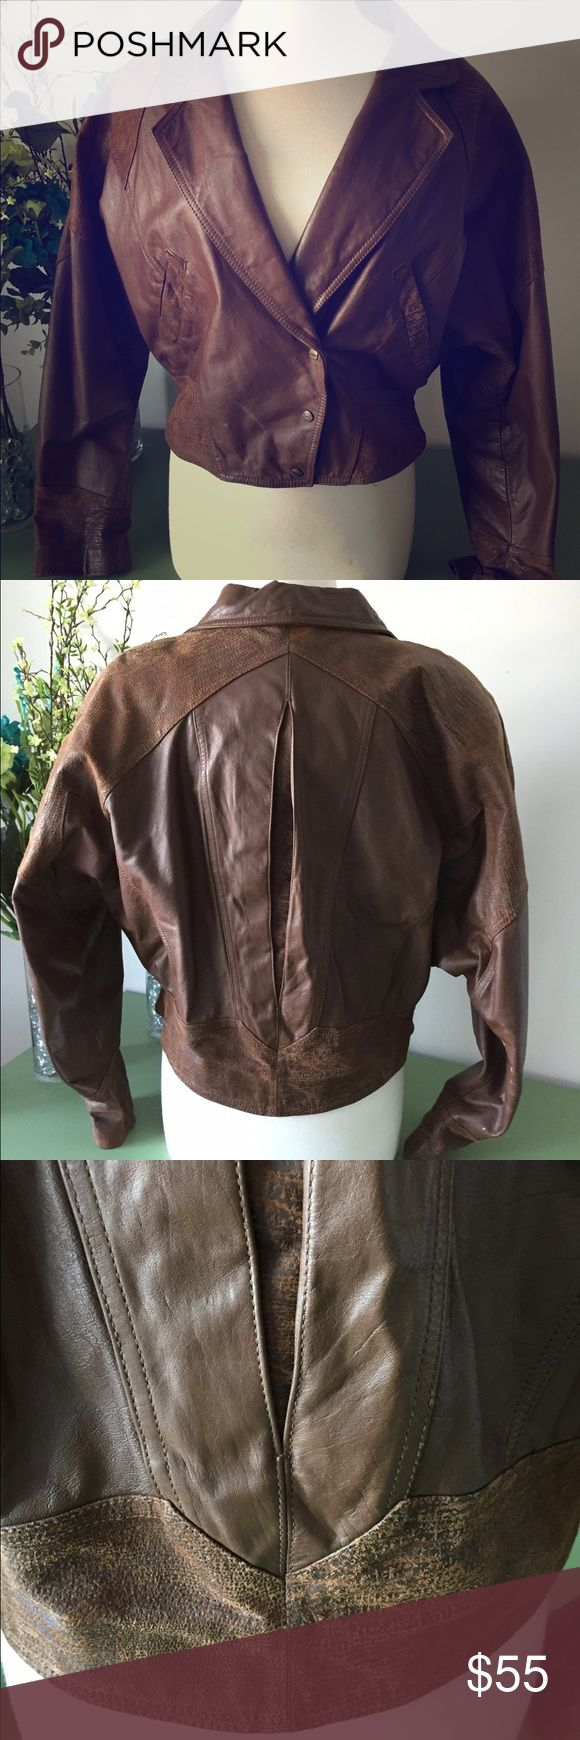 G4000 GENUINE LEATHER JACKET This G4000 Genuine Leather Vintage Jacket will fit perfectly in with the rest of your trendy wardrobe!  ☞ Vintage 1980s style ☞ Mixed leather medium-tone brown color ☞ Wide lapel with asymmetrical 3-snap button front closure ☞ Inverted gusset on back with topstitched diamond design  ☞ 1980s raglan style sleeves ☞ 2 waist pockets ☞ In great condition overall. Some minor wear and tear. ☞ Cropped Moto Style: Very roomy though the shoulders and sleeves, tapered…